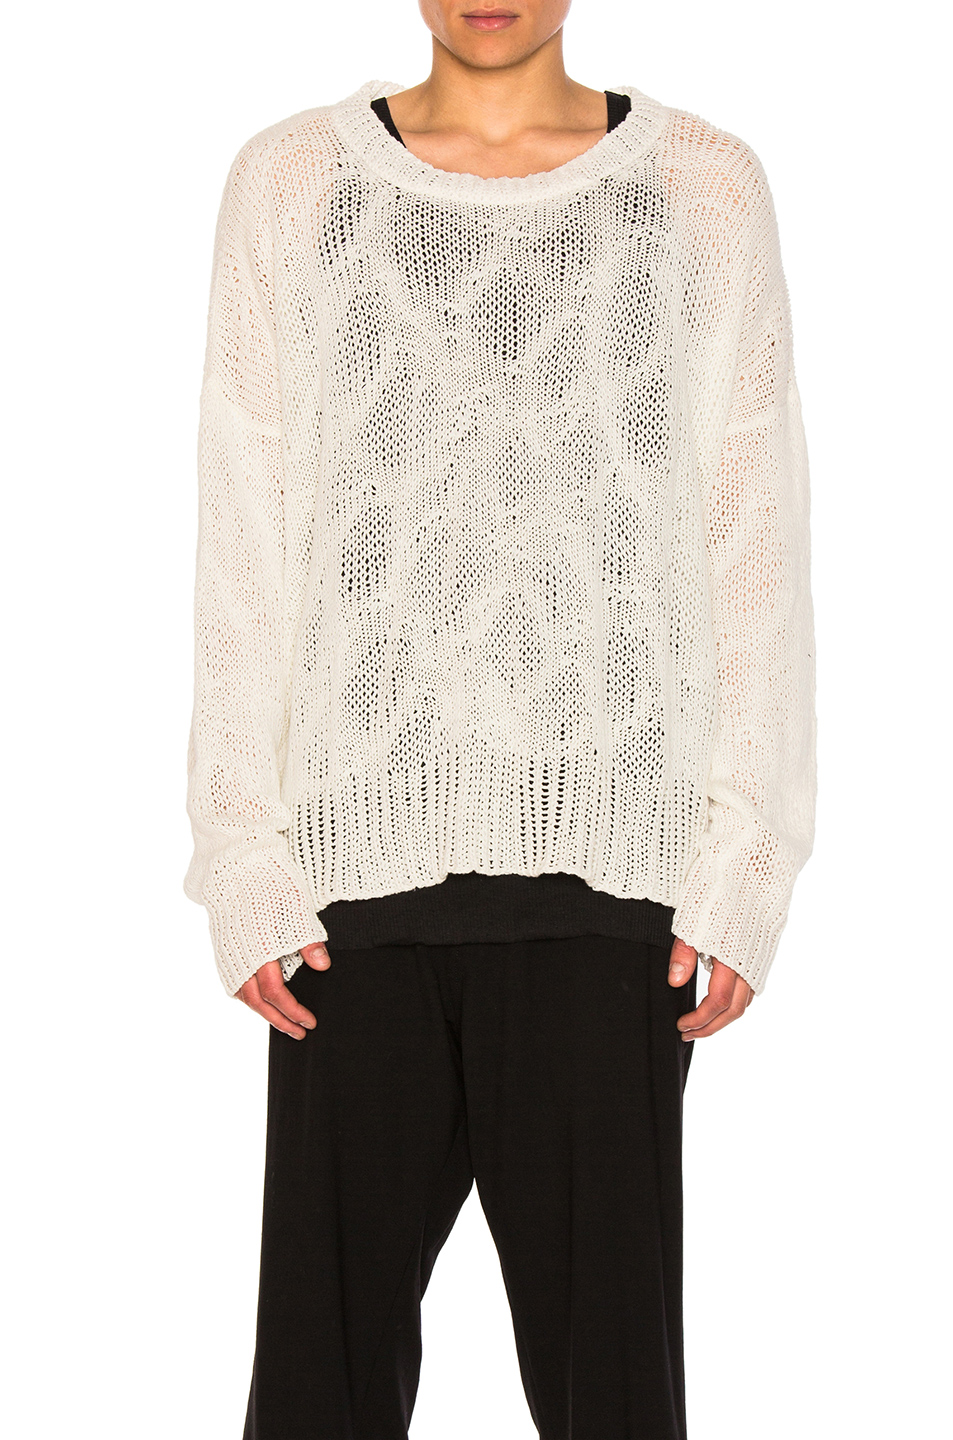 Ann Demeulemeester Sweater in White